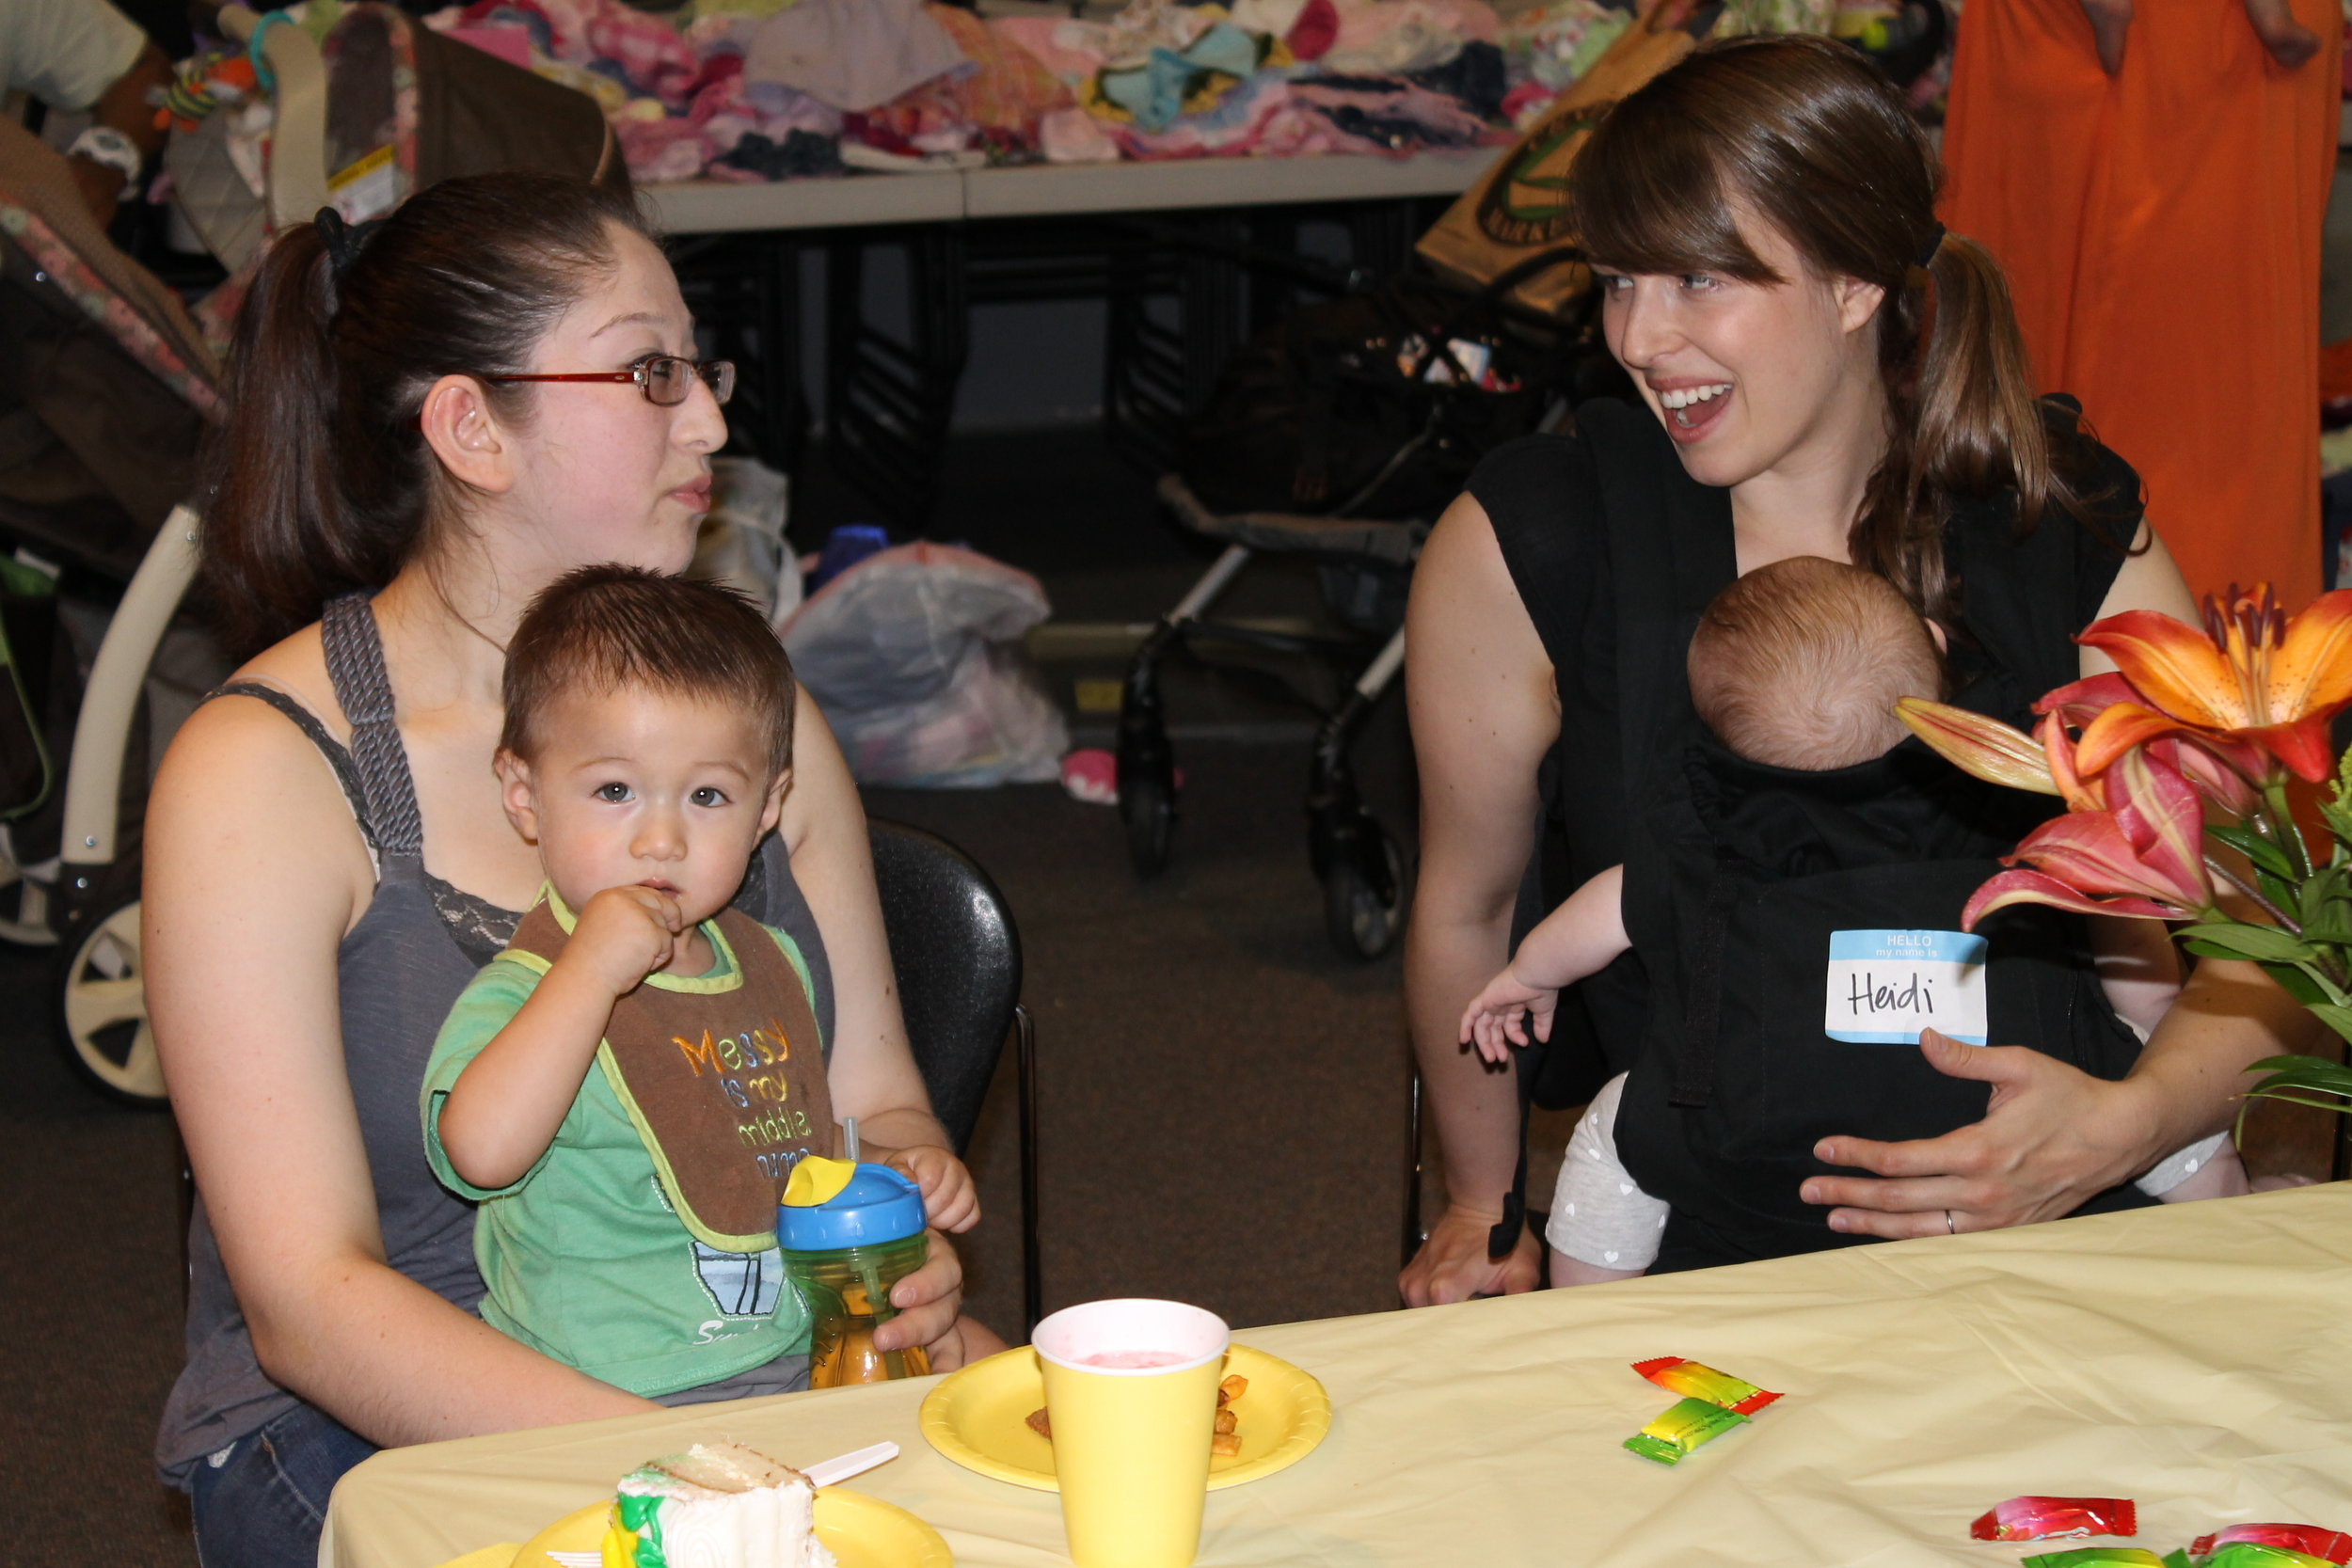 July - Danielle JorgensenJourney Church hosted a fantastic community baby shower, and we were honored to be able to partner with them to help out and to provide a fun event that benefitted many of our Step By Step moms. Danielle did a great job coordinating this event!